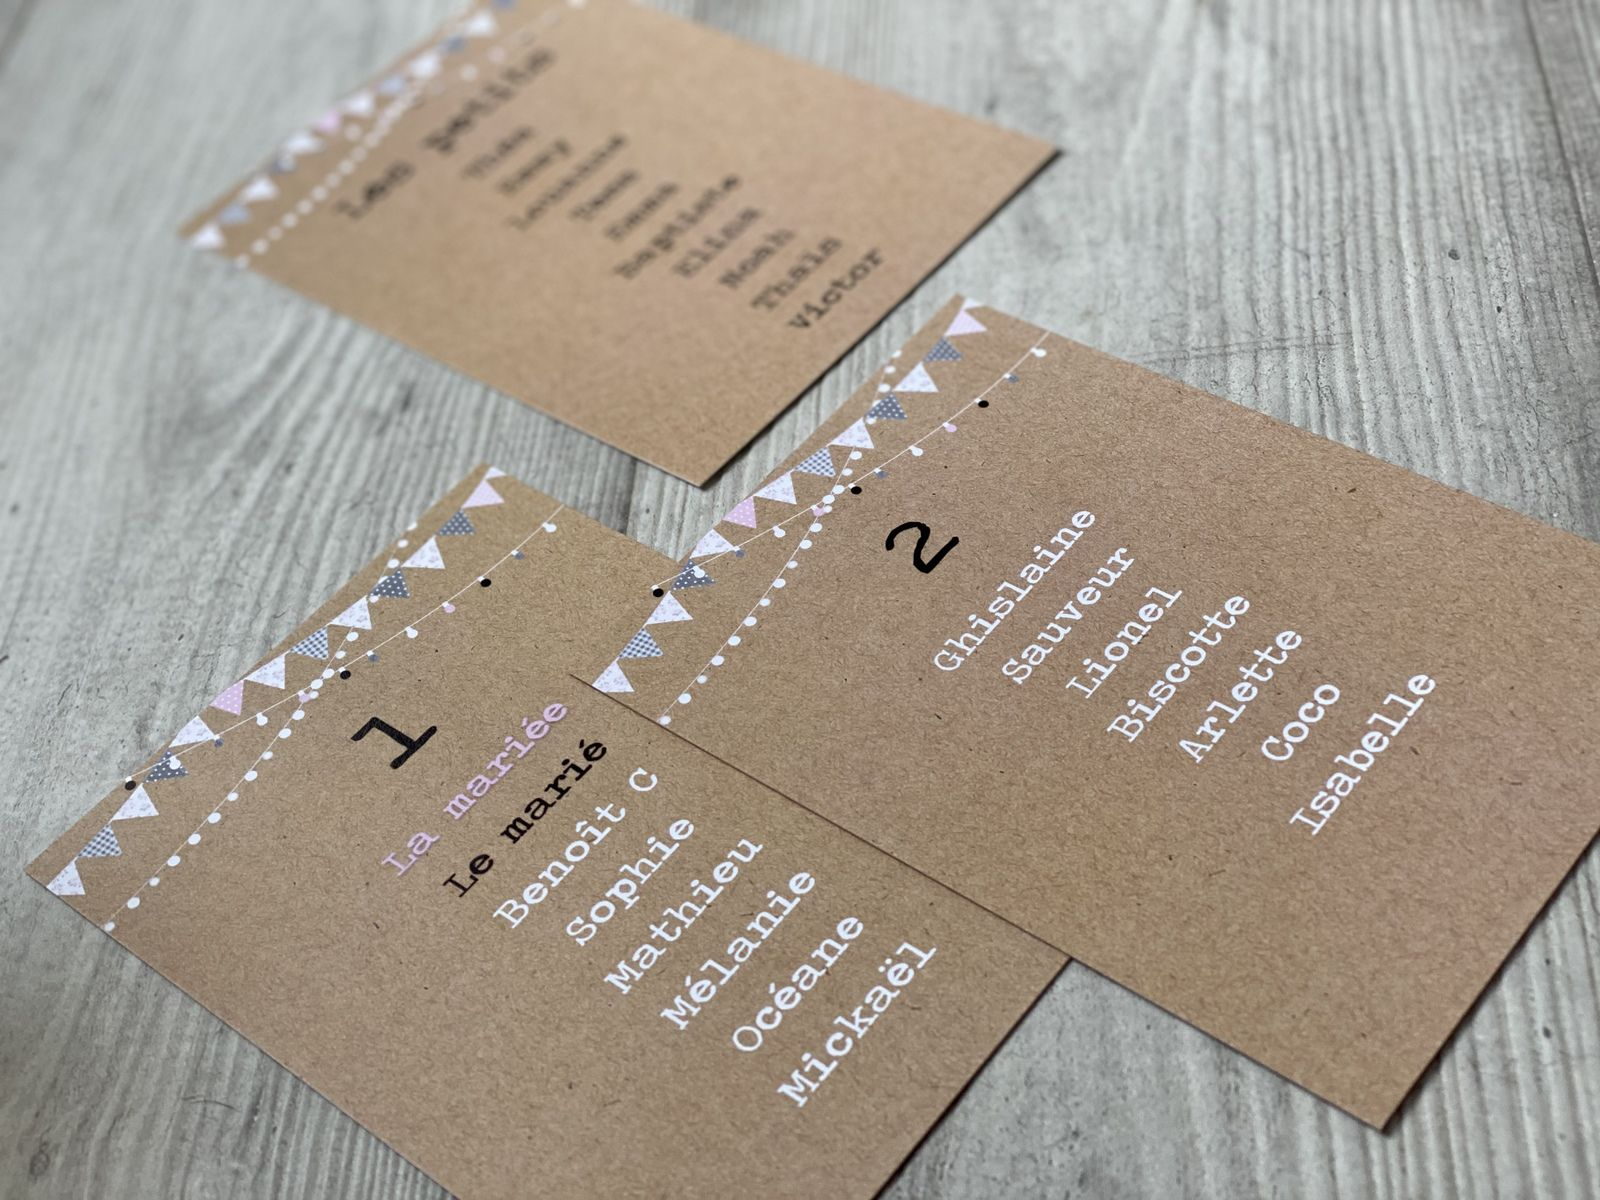 options plan de table assorties au faire part de mariage sur mesure et à personnaliser impression fond type kraft simple recto 12x17cm #efdcbysoscrap